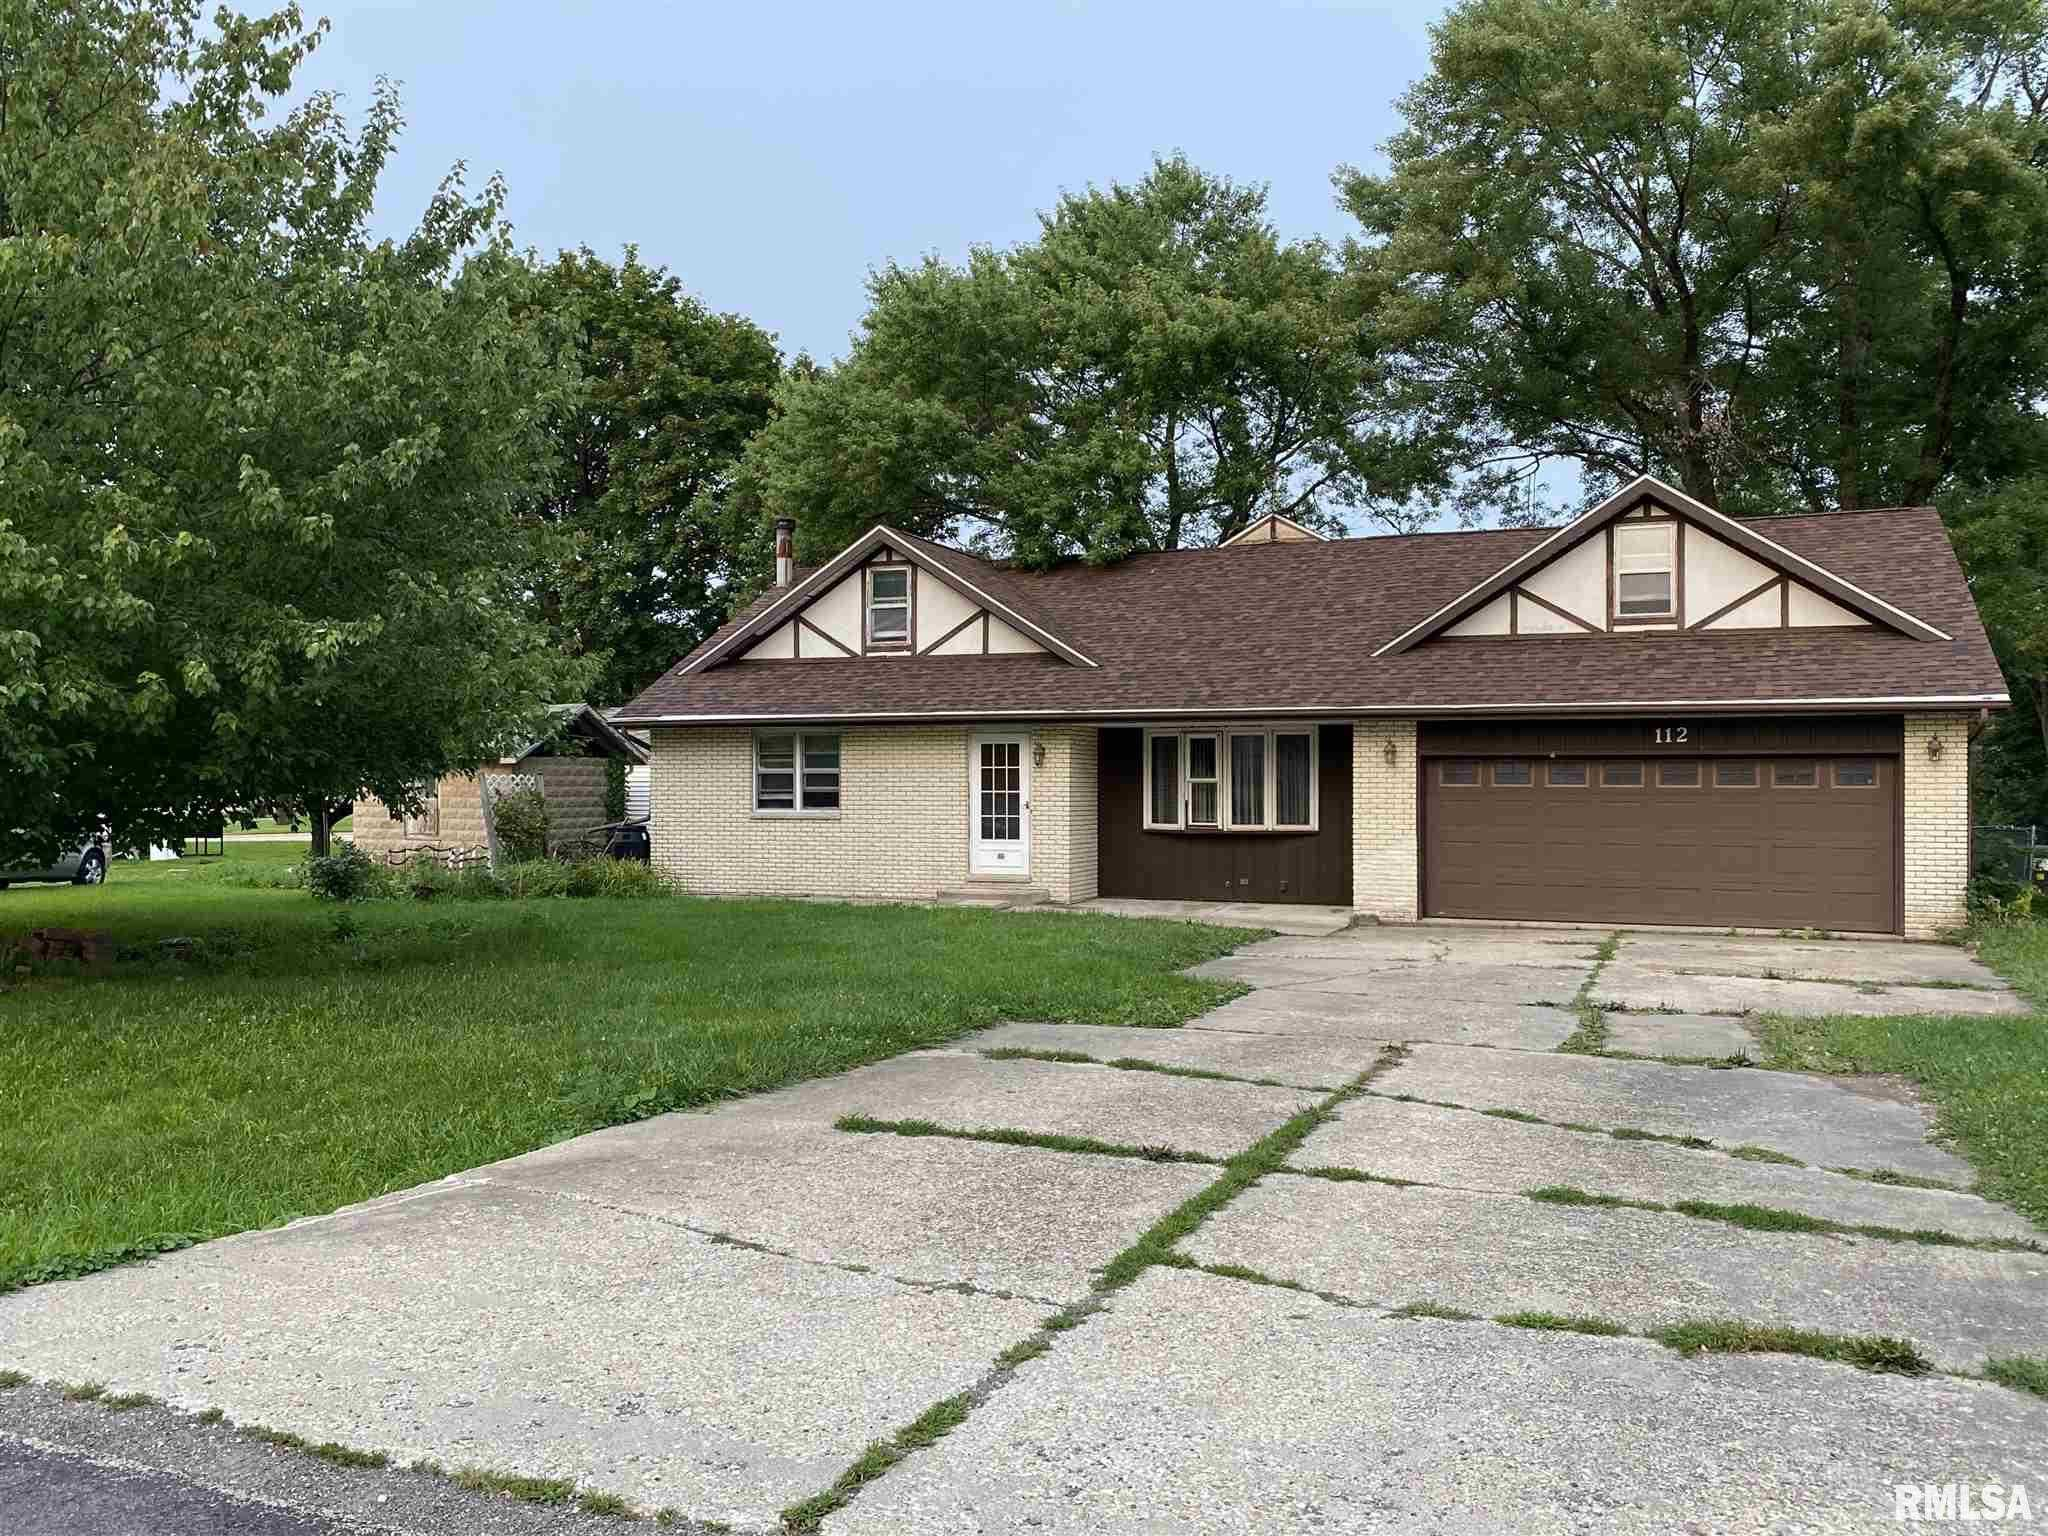 $79,900 - 3Br/3Ba -  for Sale in Unavailable, Creve Coeur